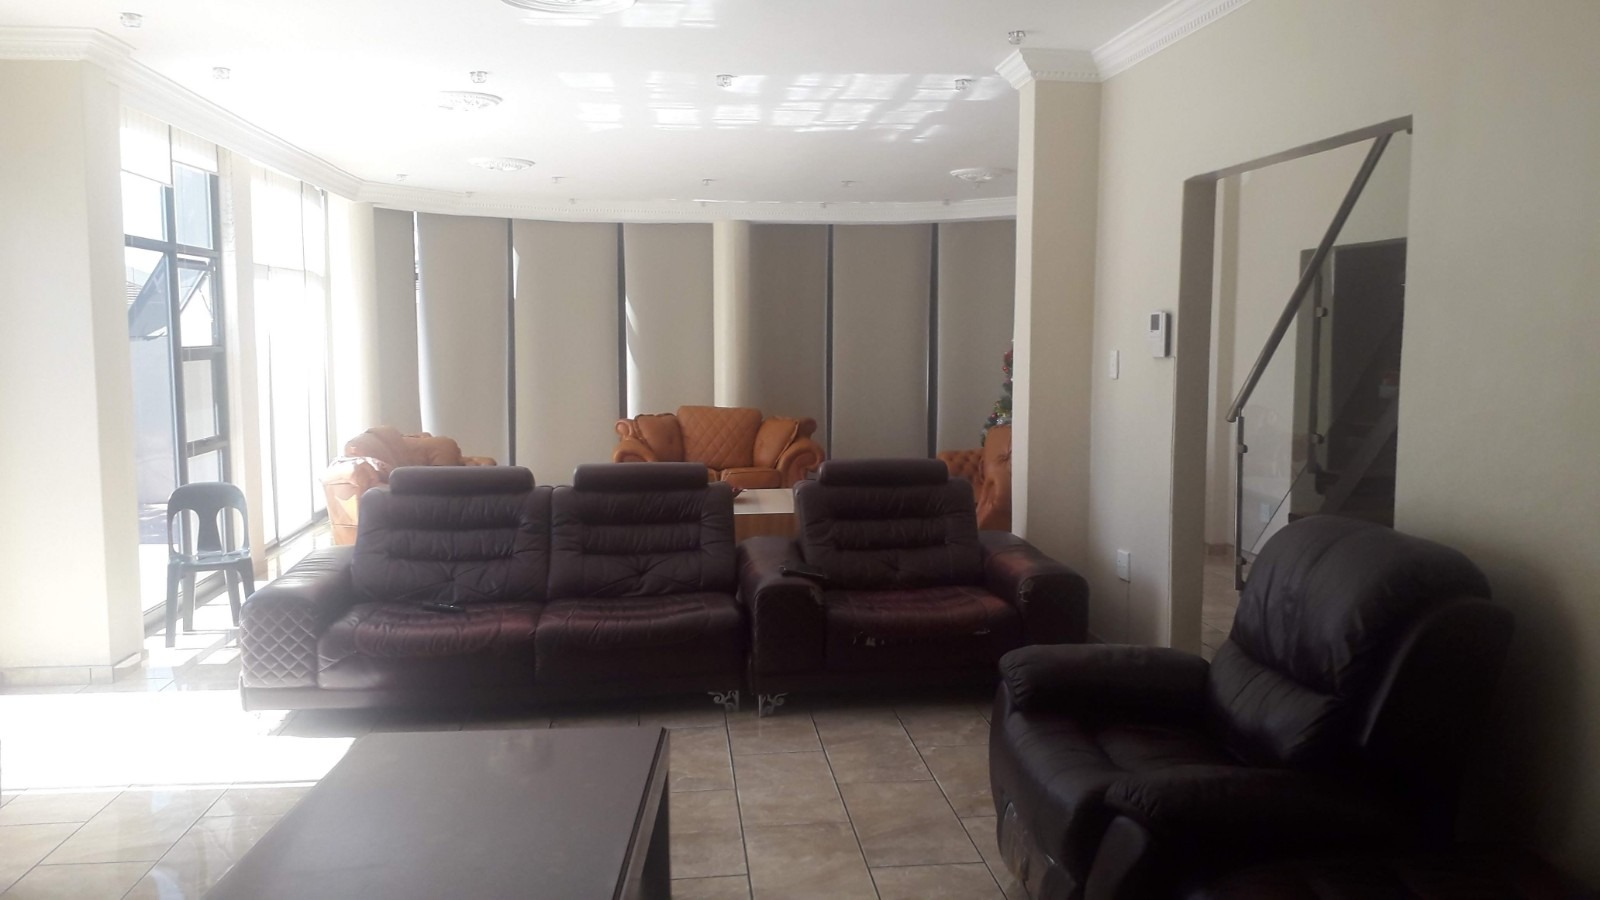 8 Bedroom House For Sale in Pioniers Park